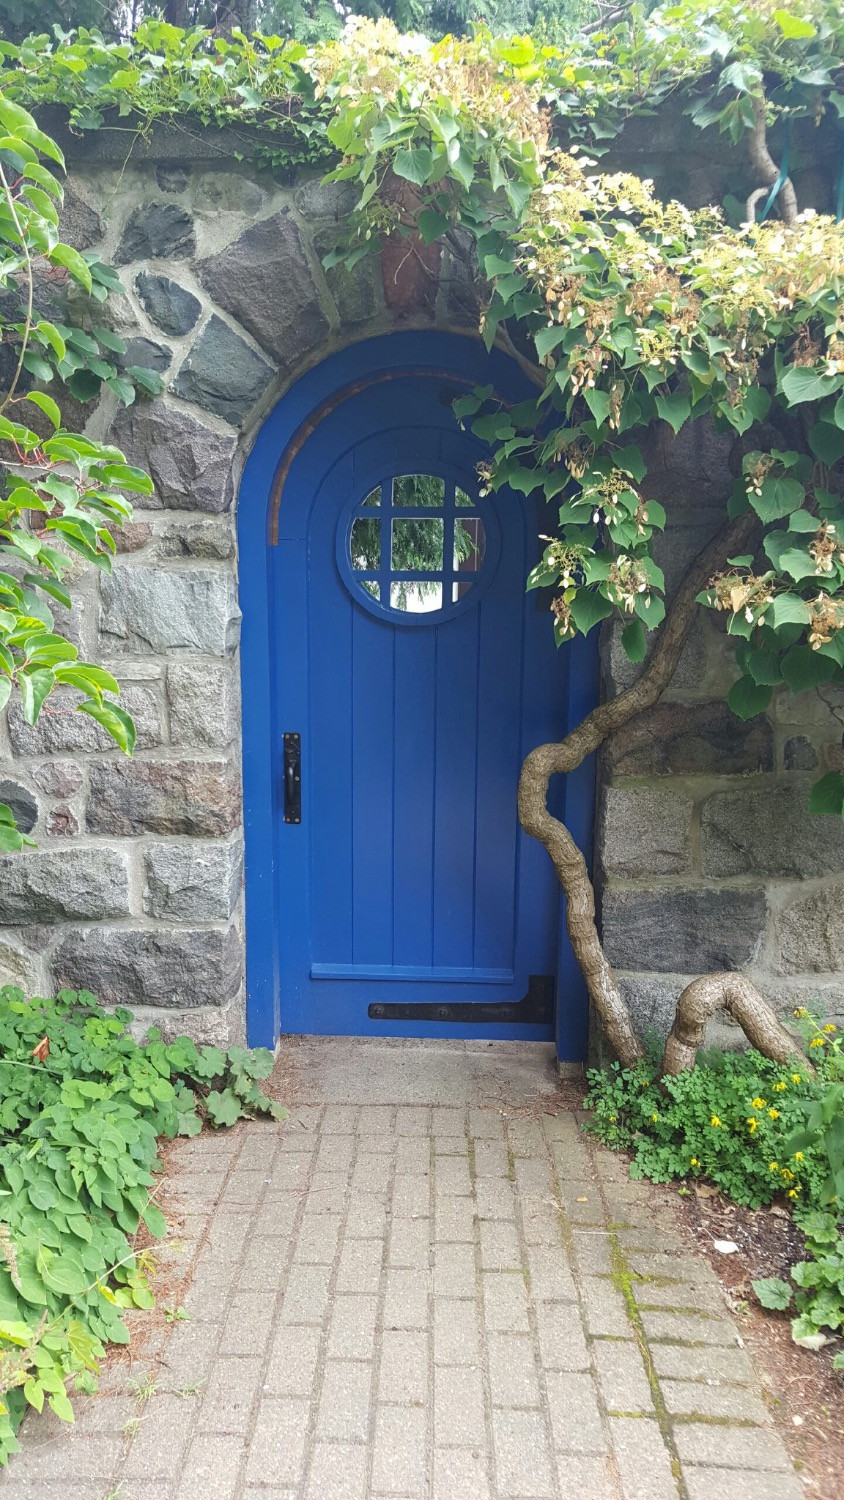 Stone wall with blue door. Photo by Diana Dinverno